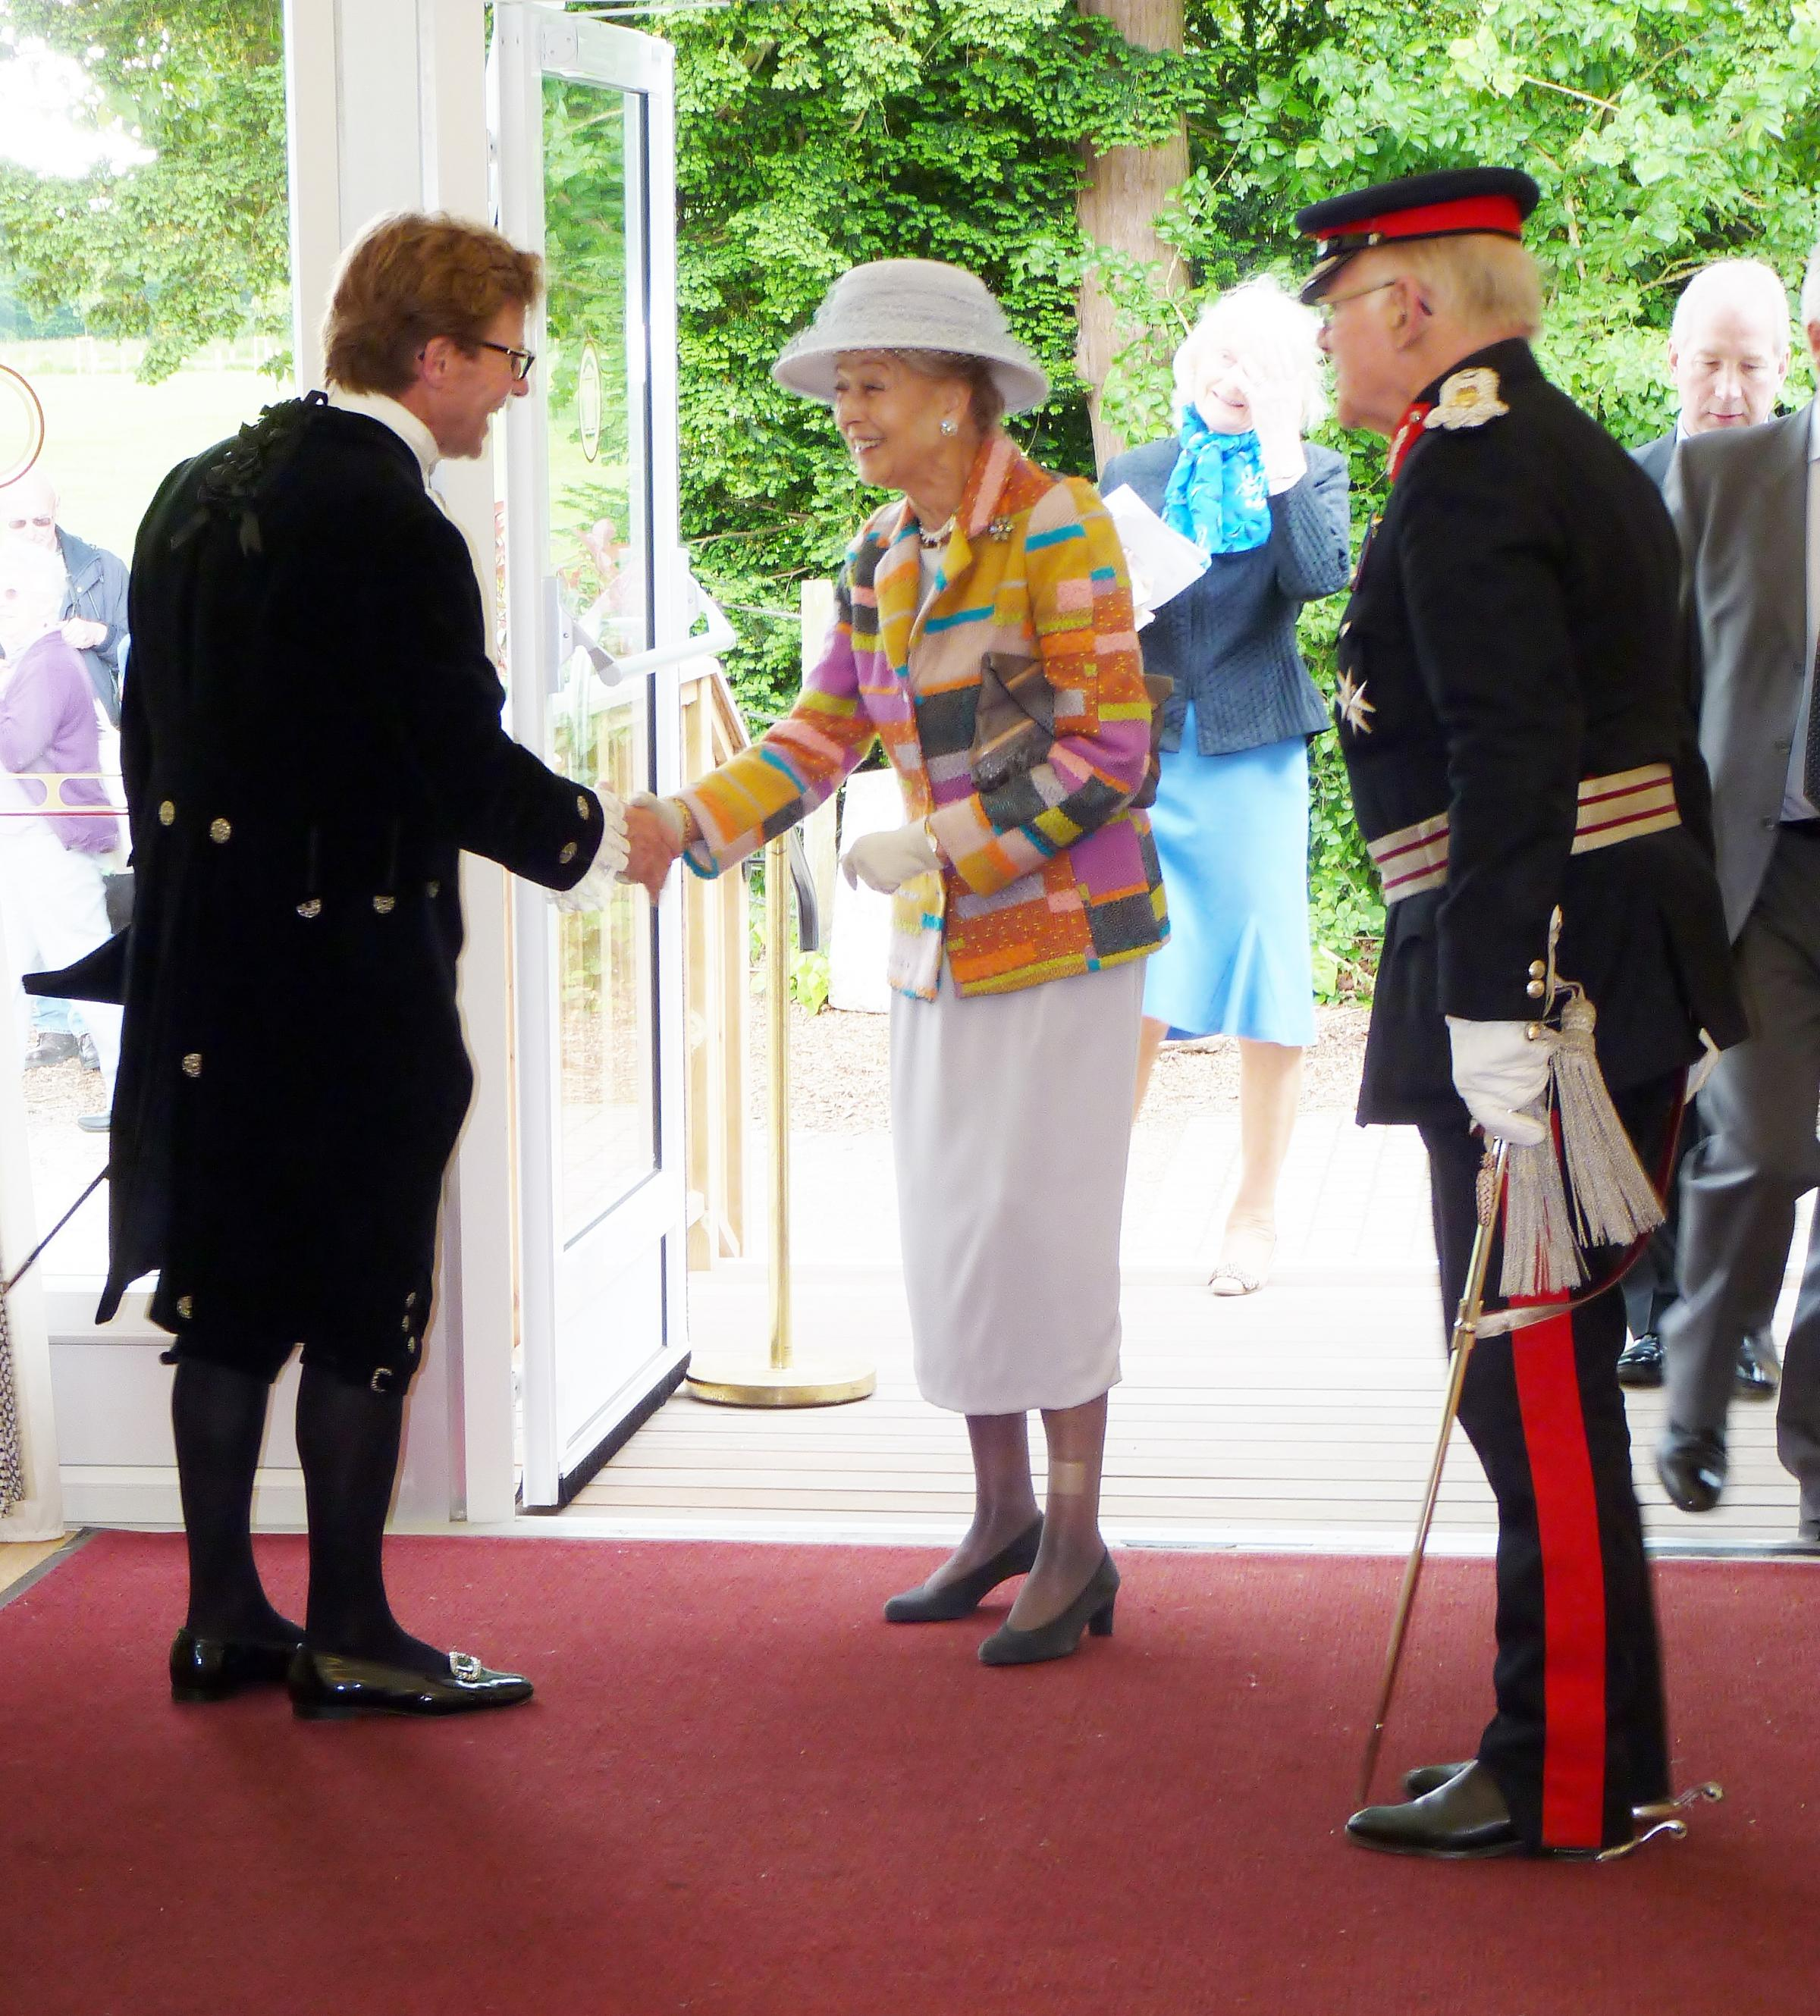 Special guest: Princess Alexandra with the High Sheriff and Lord Lieutenant of Essex at Hylands House